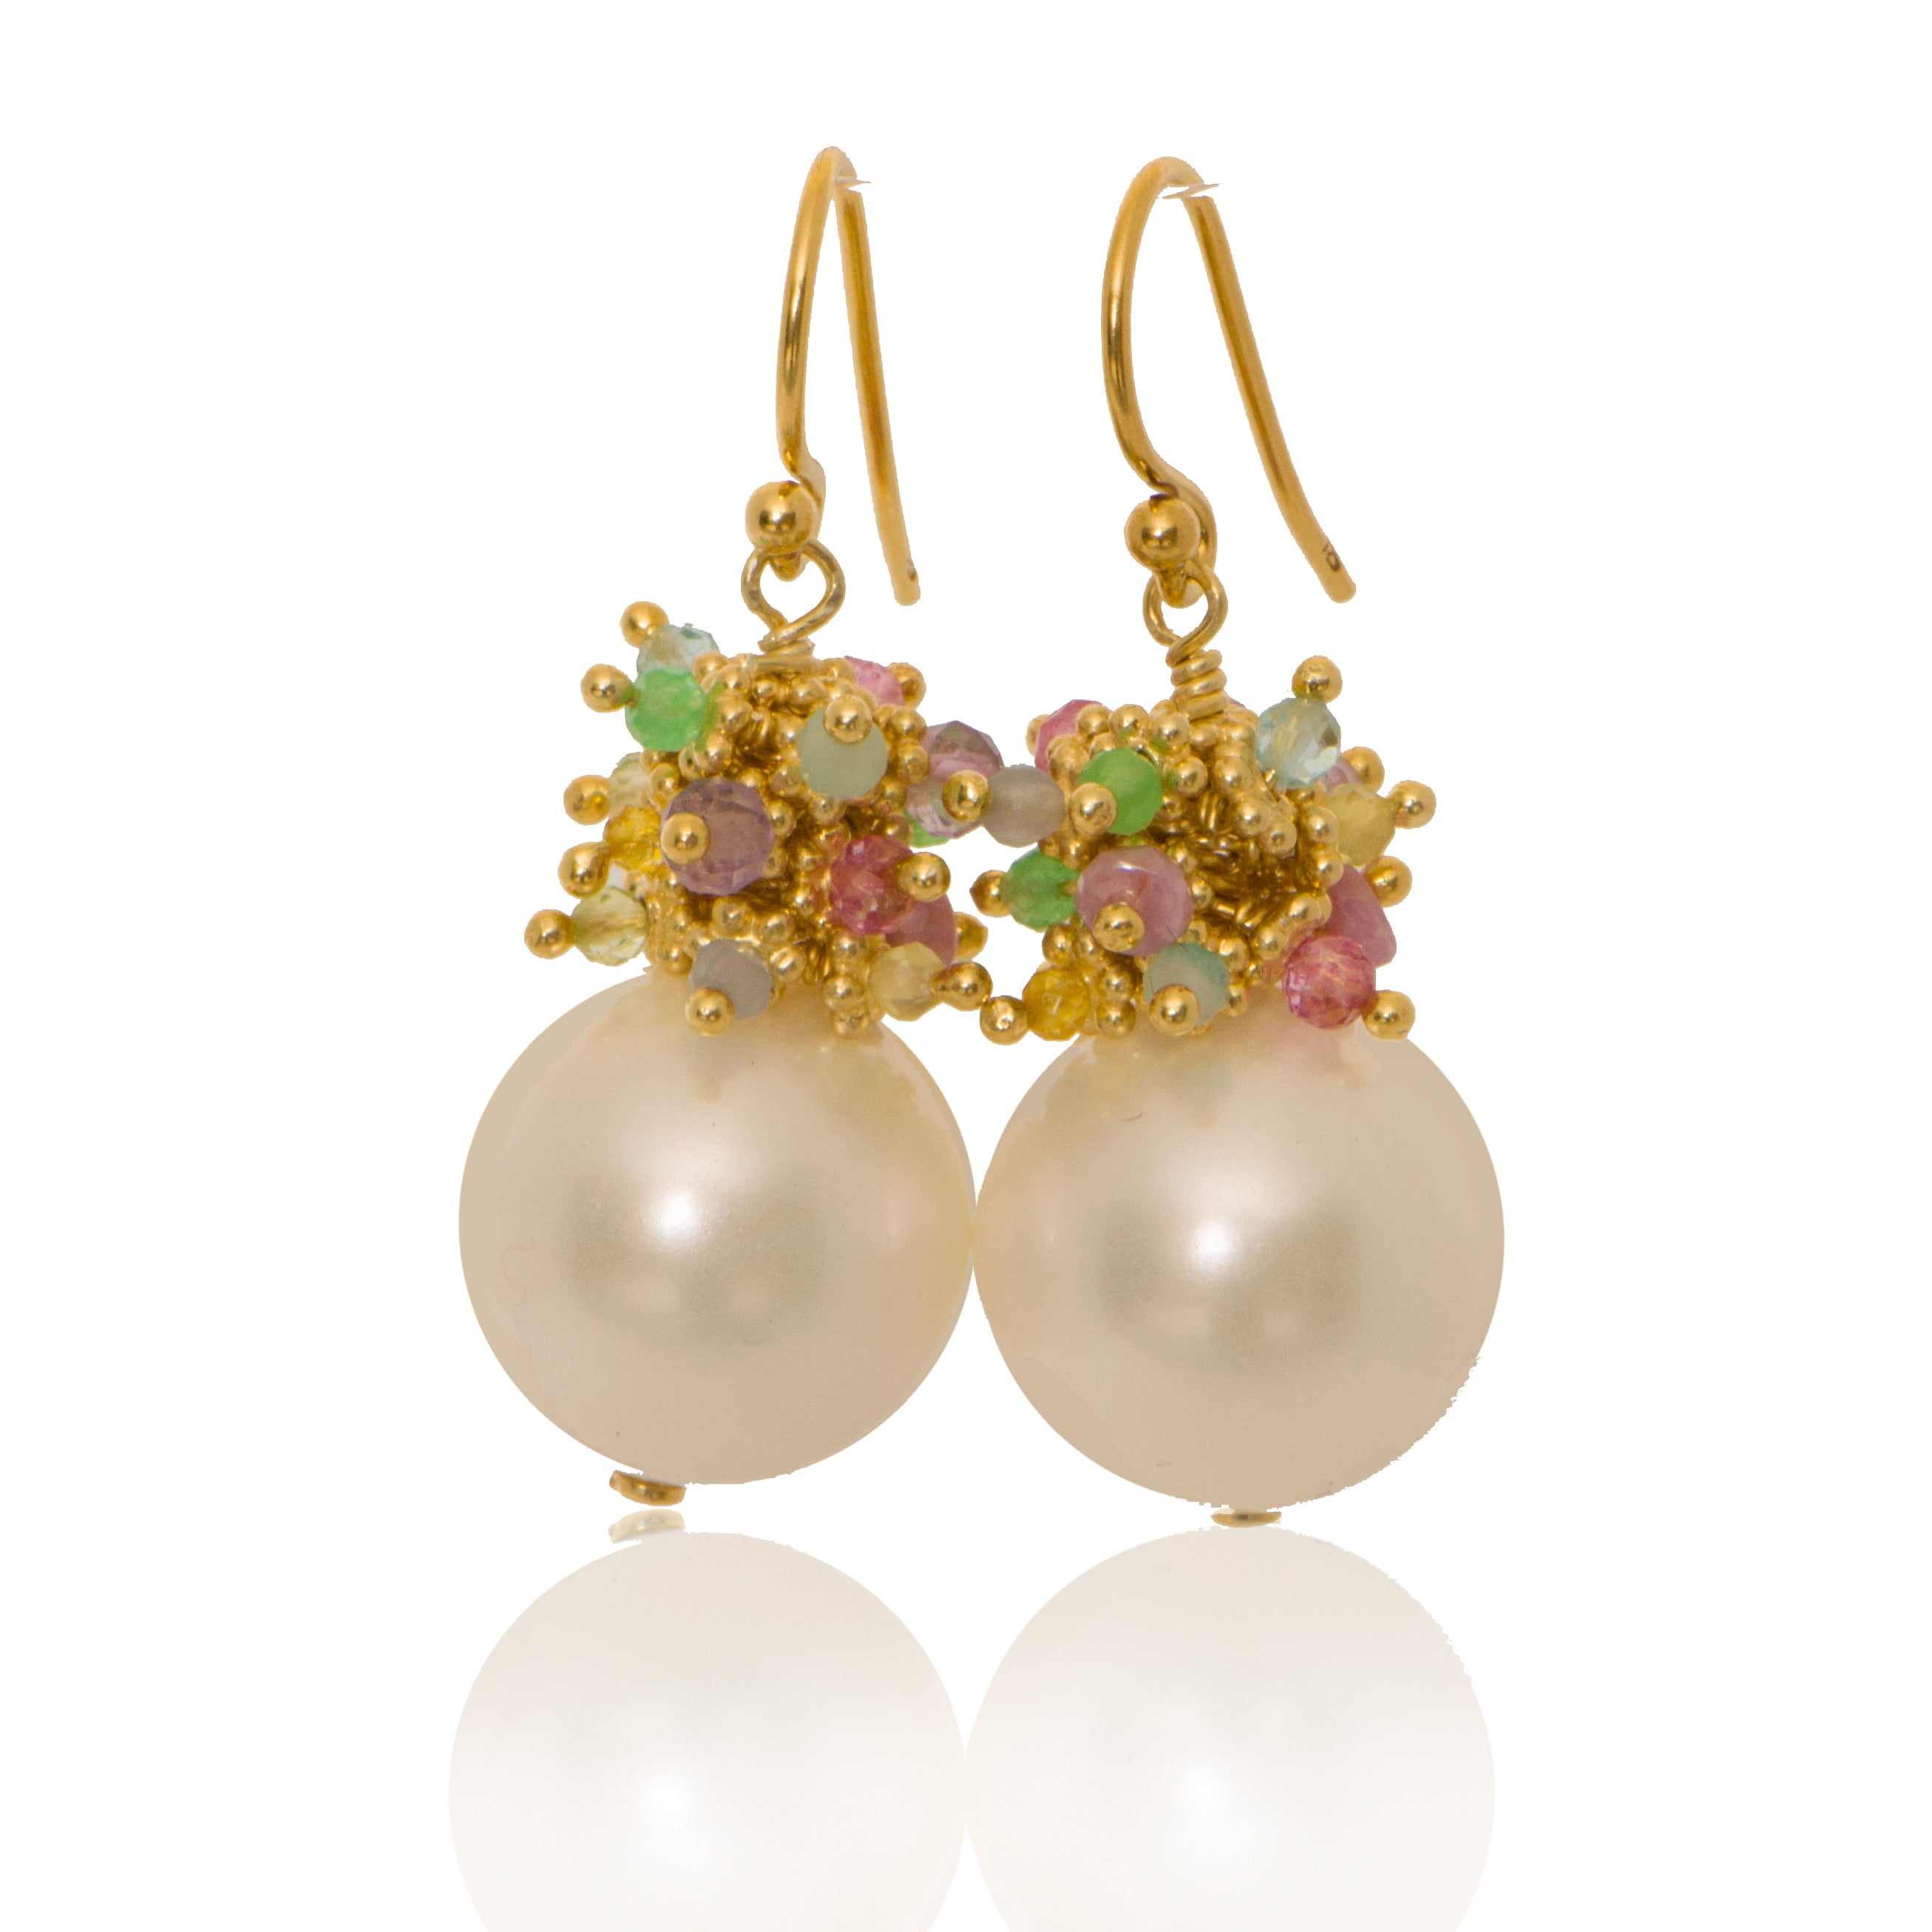 Shell Pearl Earrings with a mixed Pastel Top